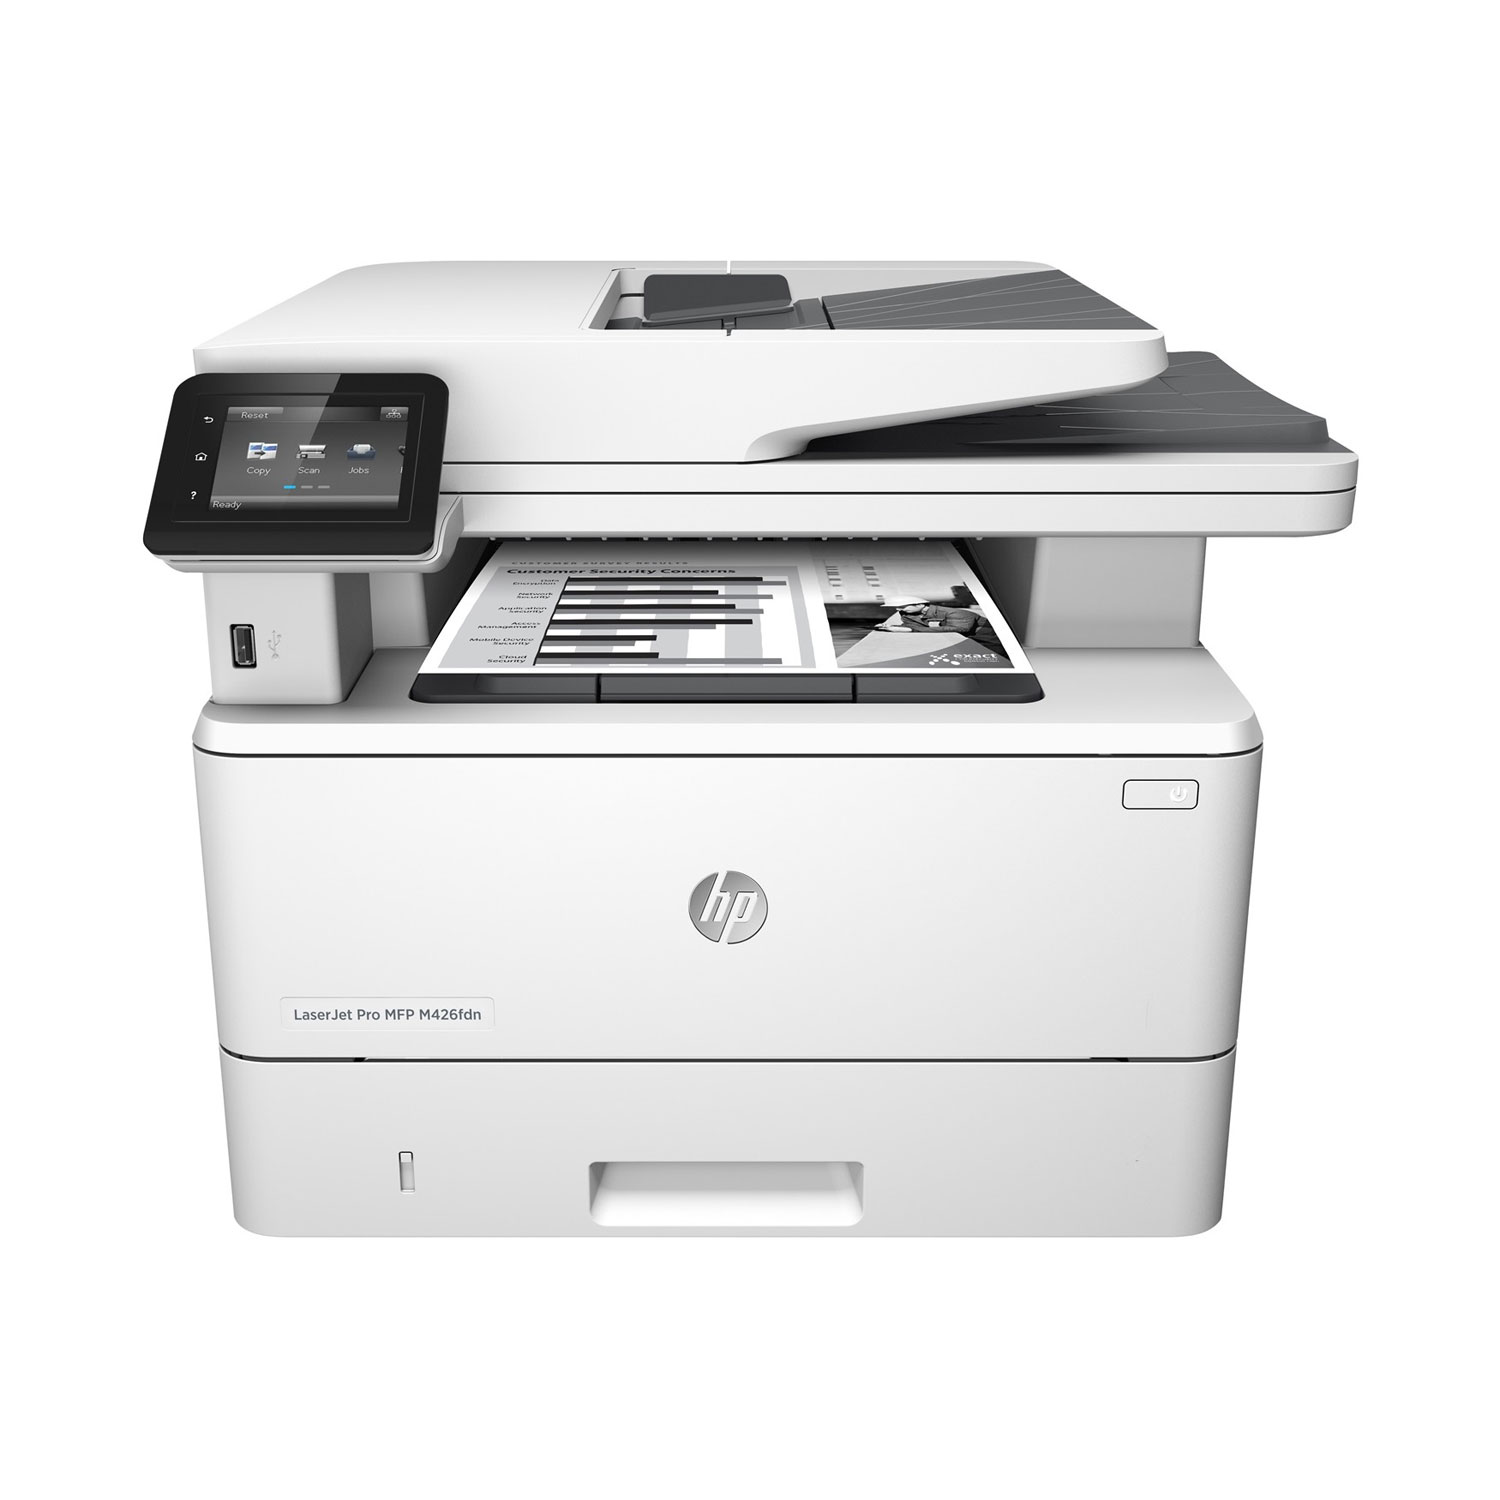 hp laserjet pro 400 m426fdn imprimante multifonction hp sur. Black Bedroom Furniture Sets. Home Design Ideas